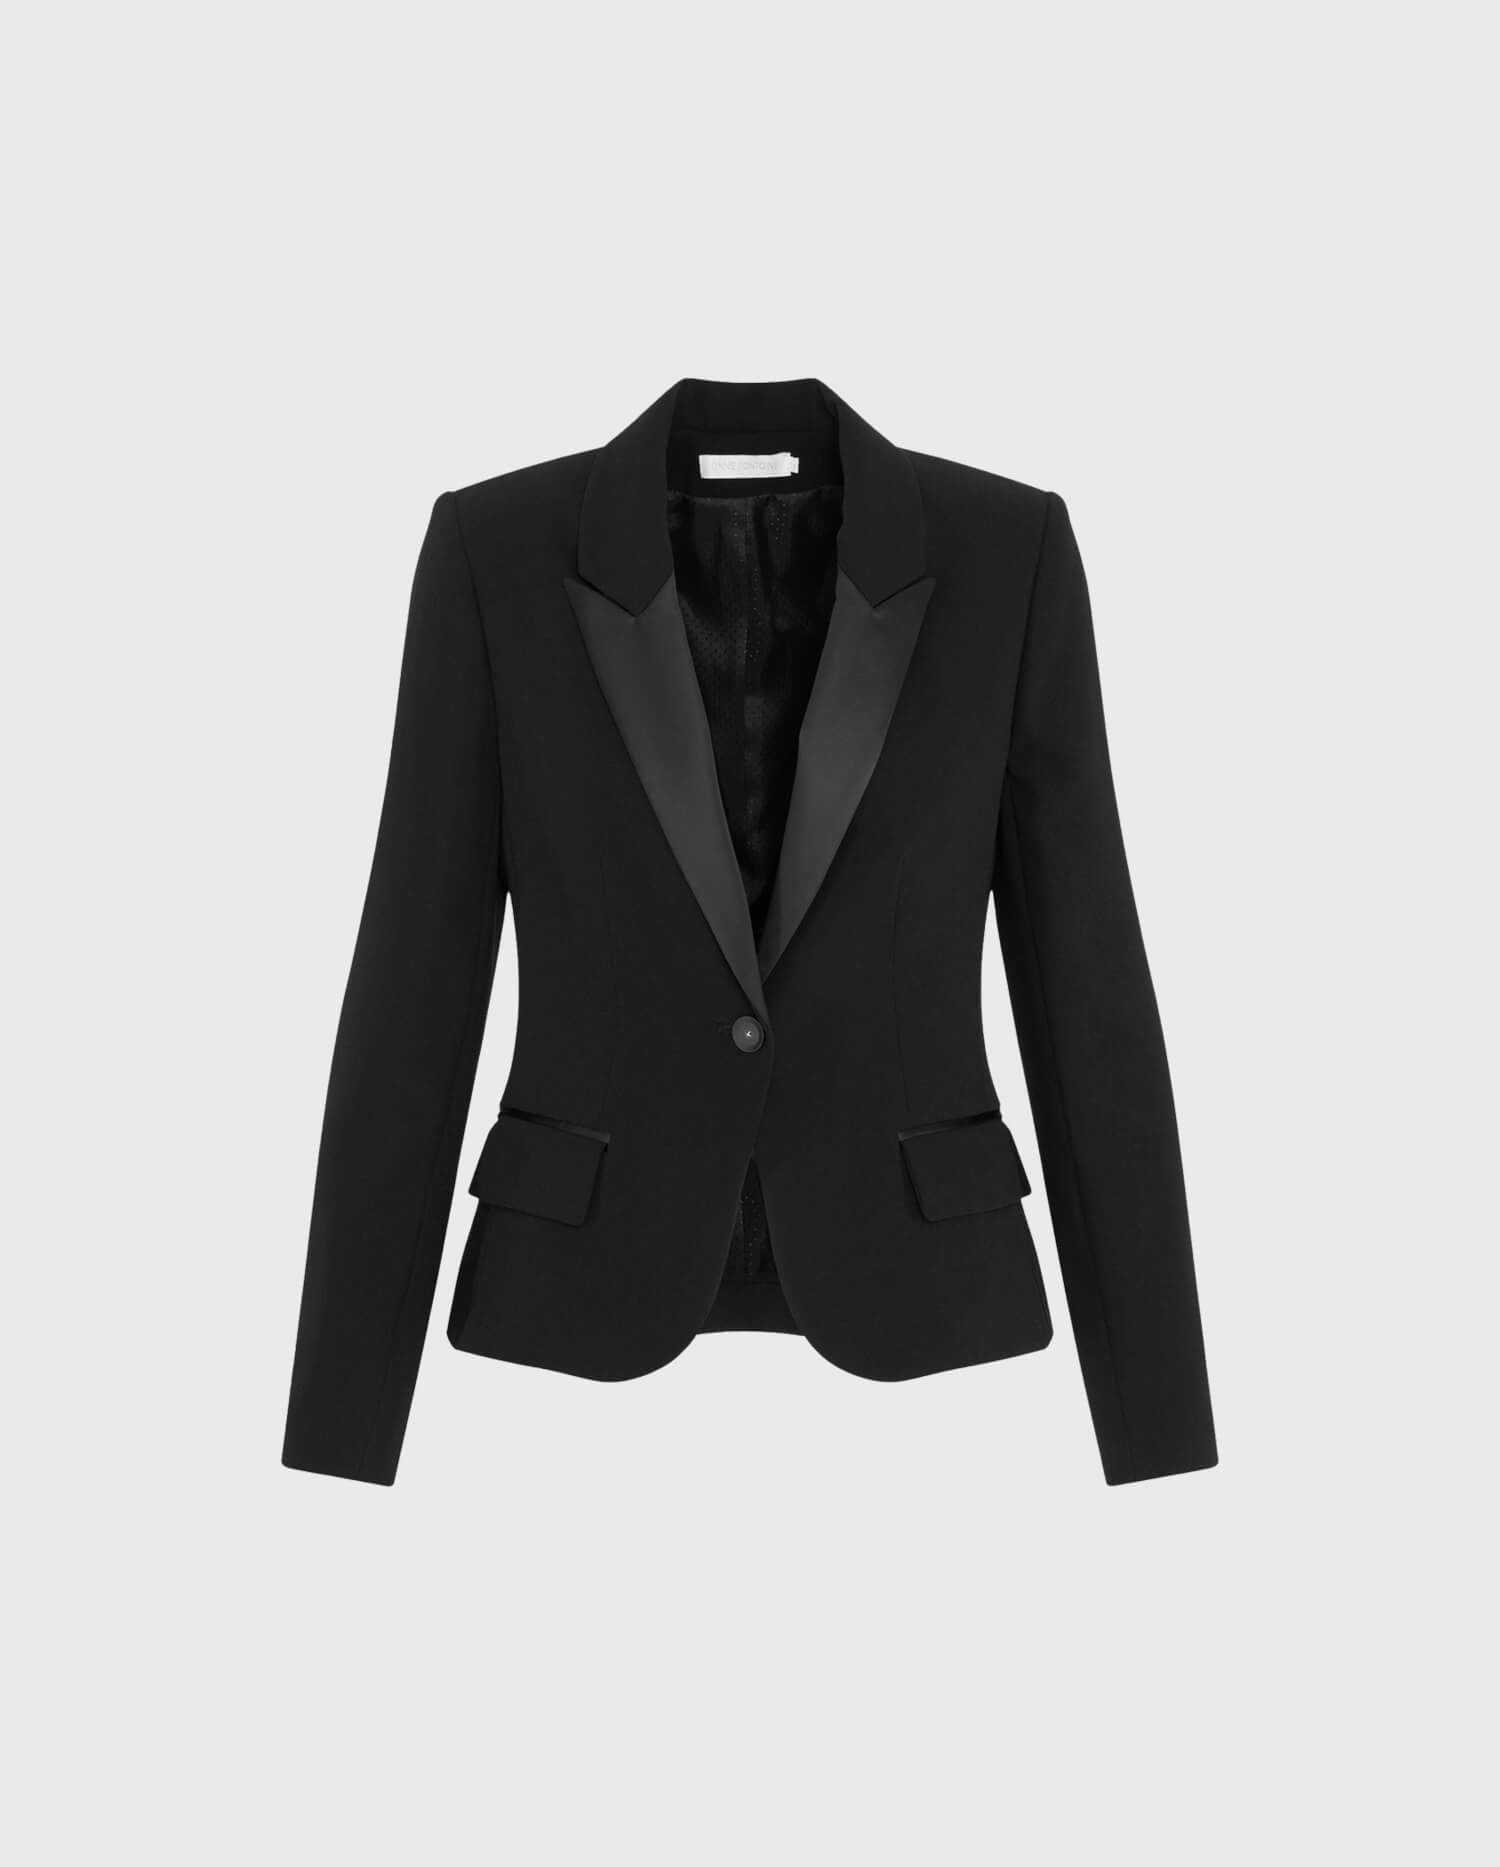 The SMART Black Tuxedo Jacket Is The Perfect Masculine - Feminine Style Jacket To Create A Parian Chic Style